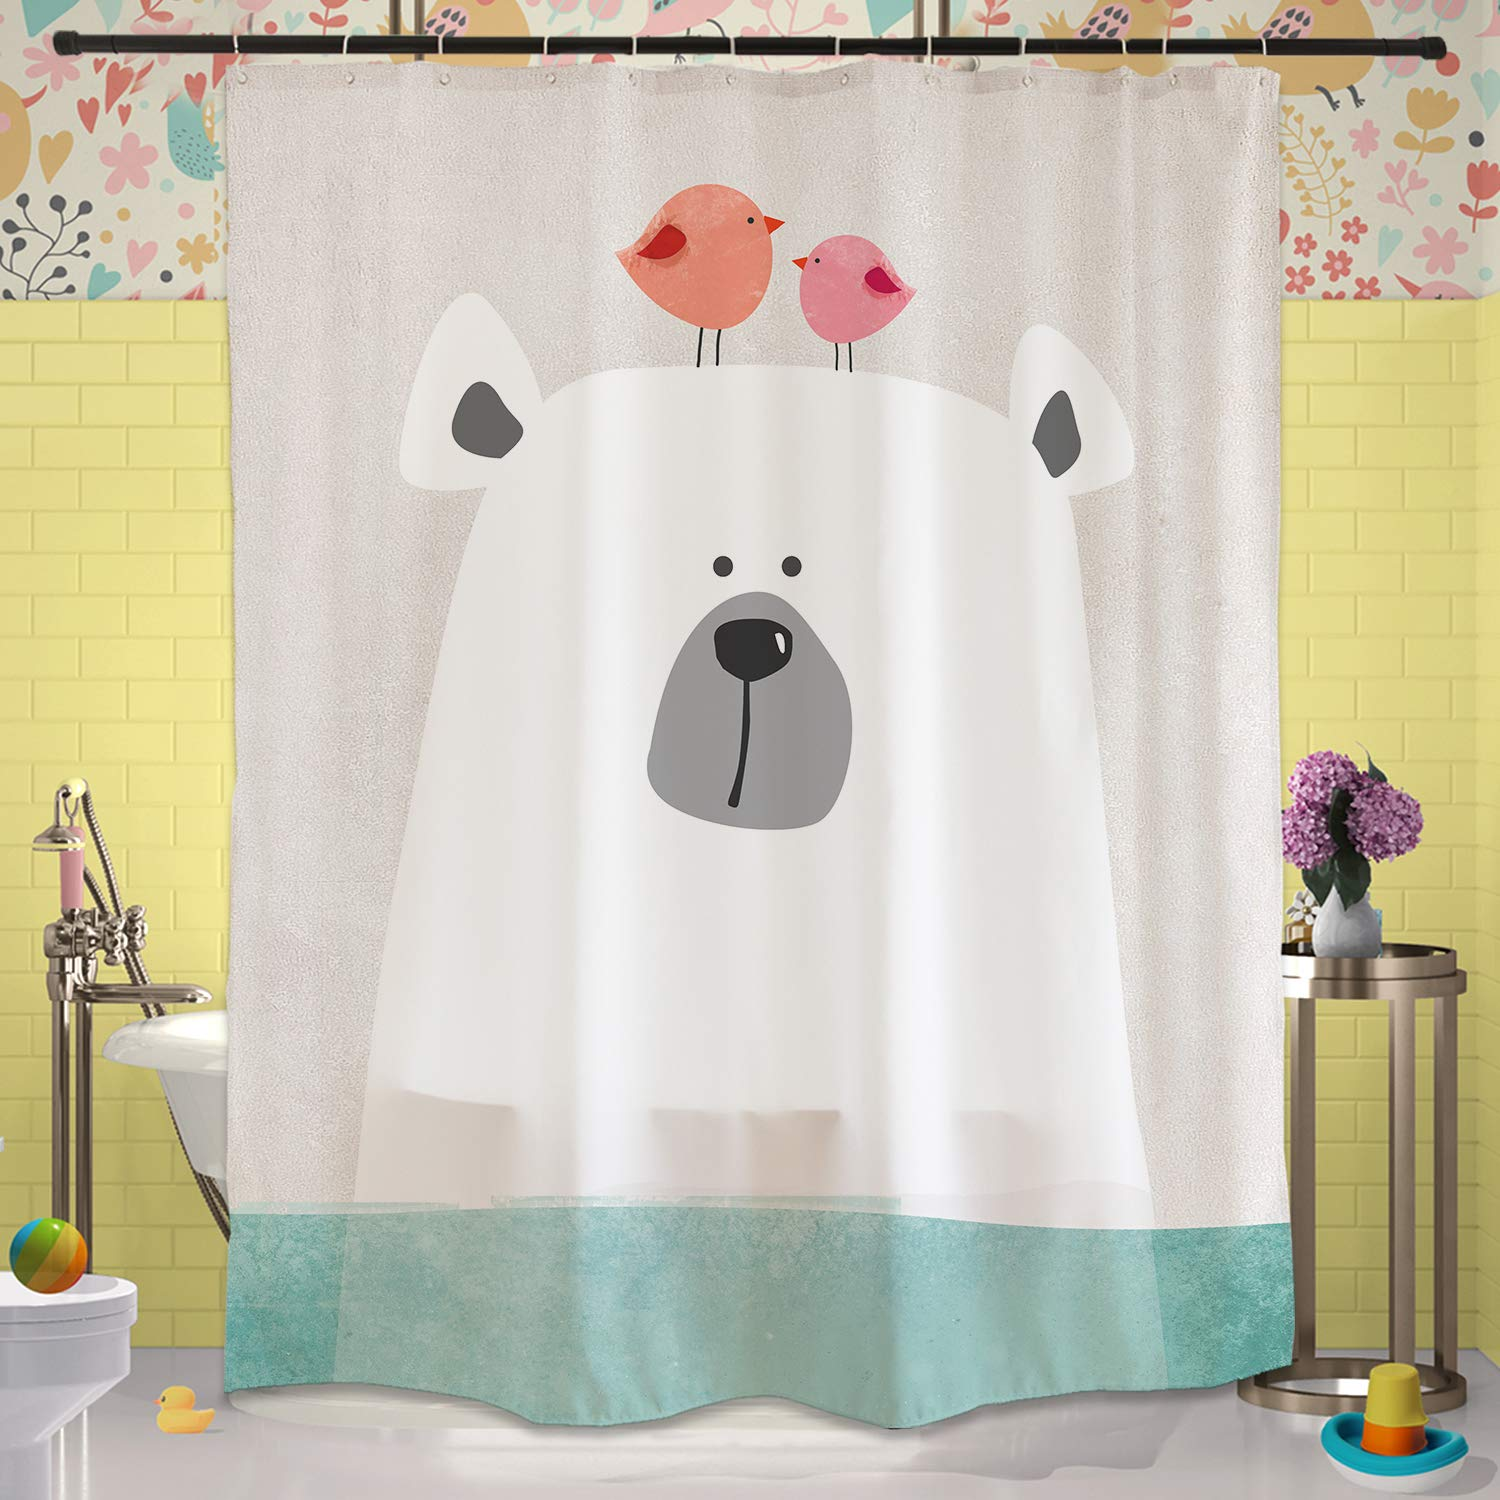 CDM product Cartoon Polar Bear in Water Shower Curtain Set with Hooks 180x180cm, Pink Birds Green Aqua Ocean, Waterproof Mildew Resistant Fabric Accessories Kids Children Bathroom Decor small thumbnail image